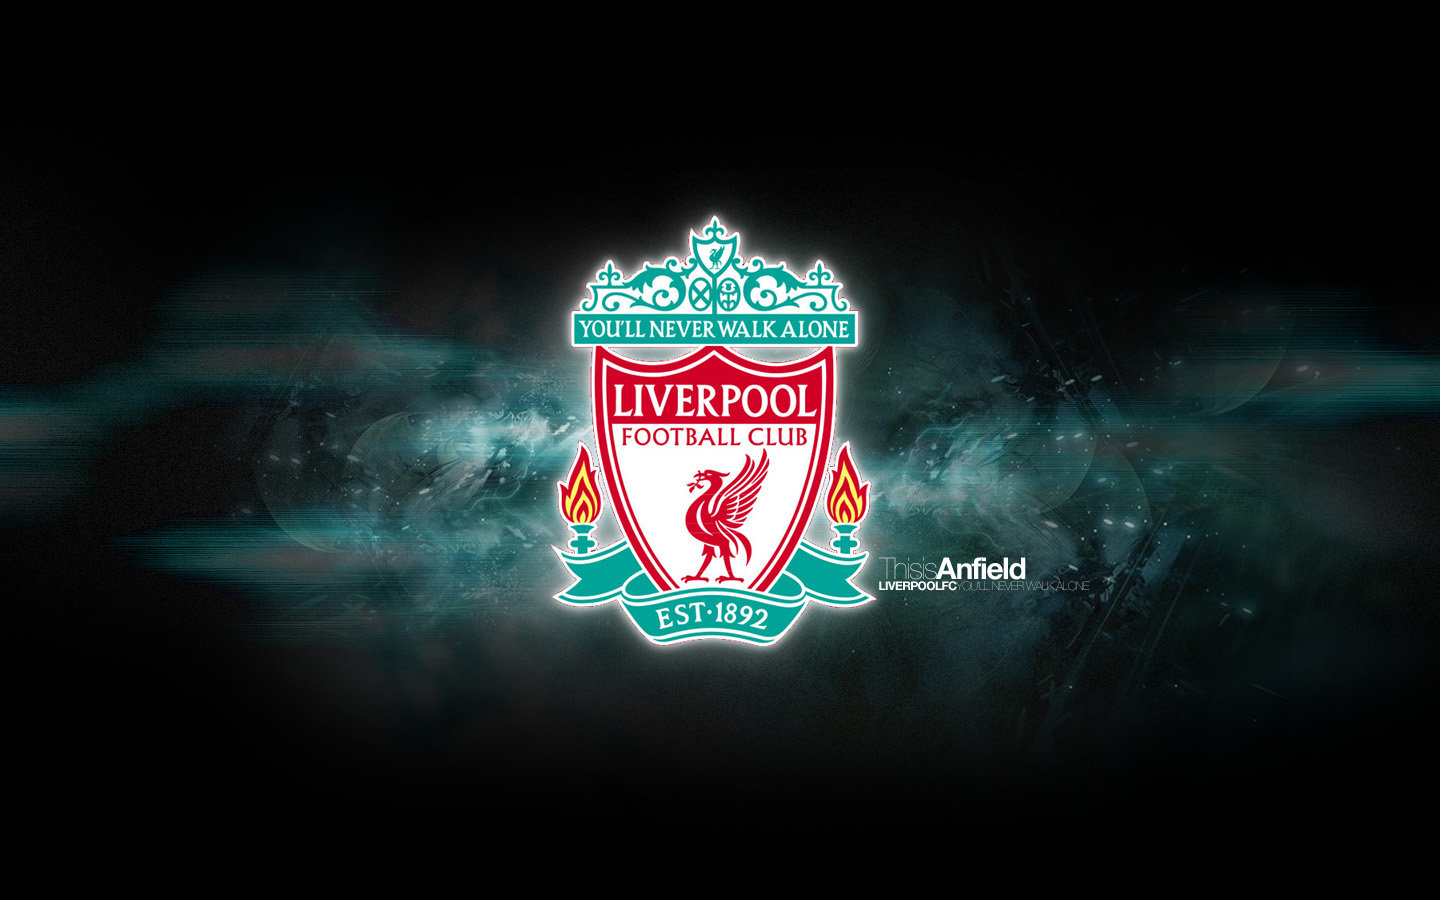 Liverpool Wallpaper Iphone Android Wallpaper with 1440x900 Resolution 1440x900